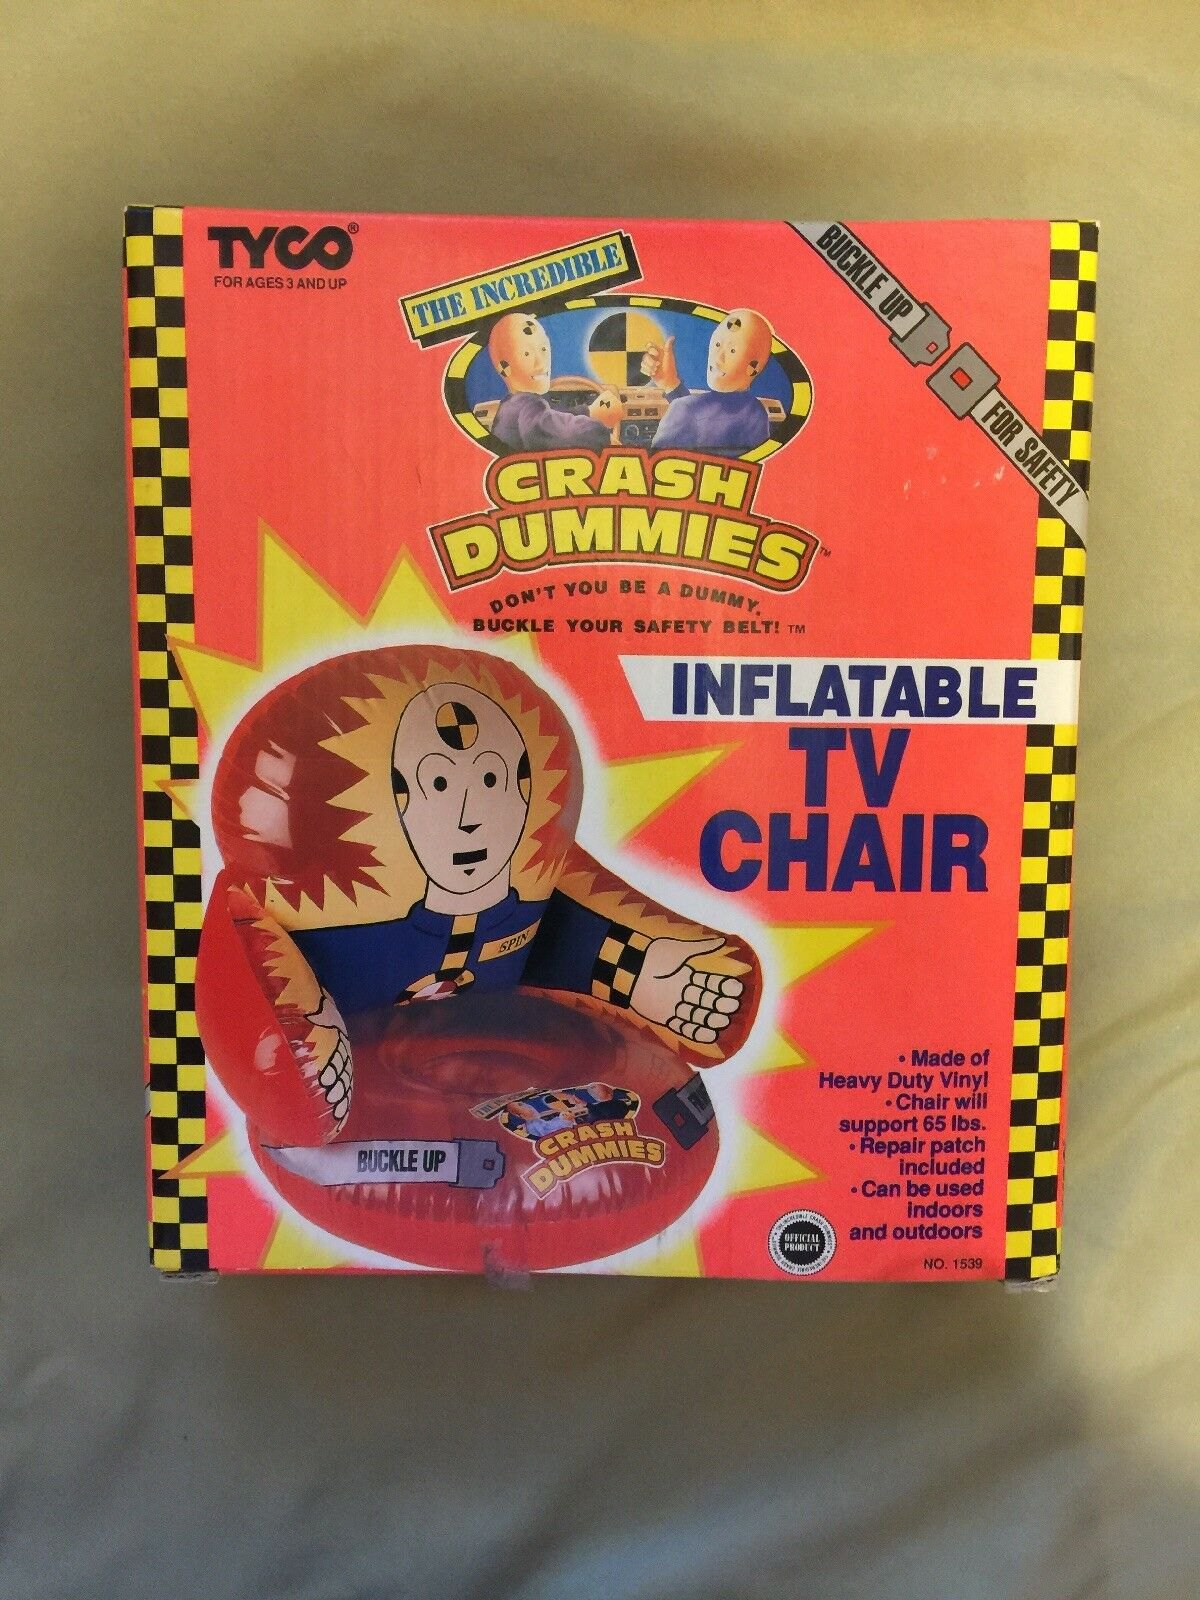 The IncROTible Crash Dummies Inflatable TV Chair